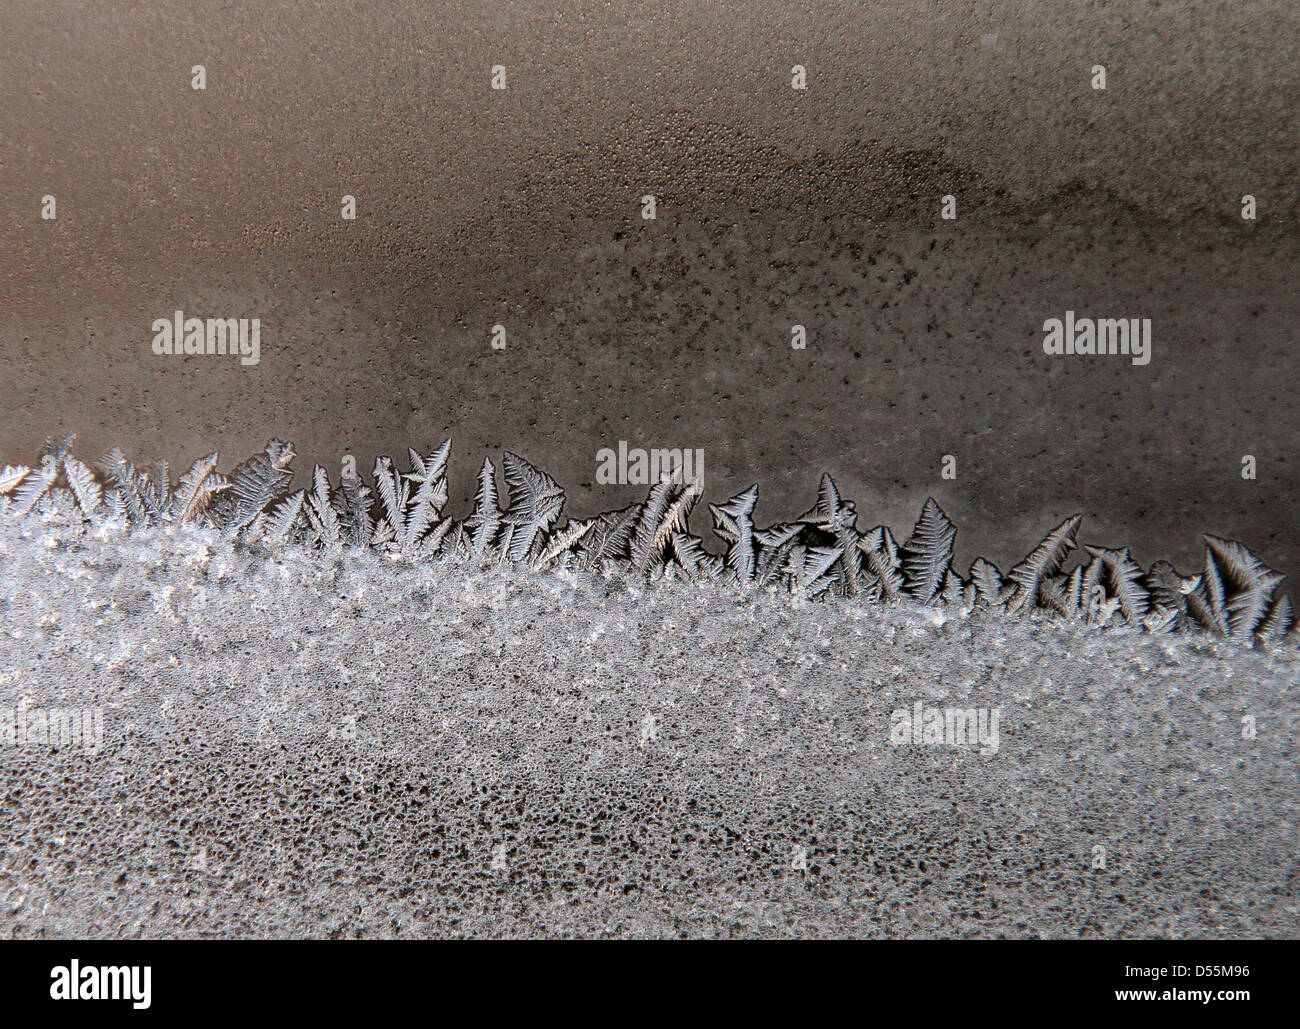 Berlin, Germany, frost patterns on a window pane - Stock Image